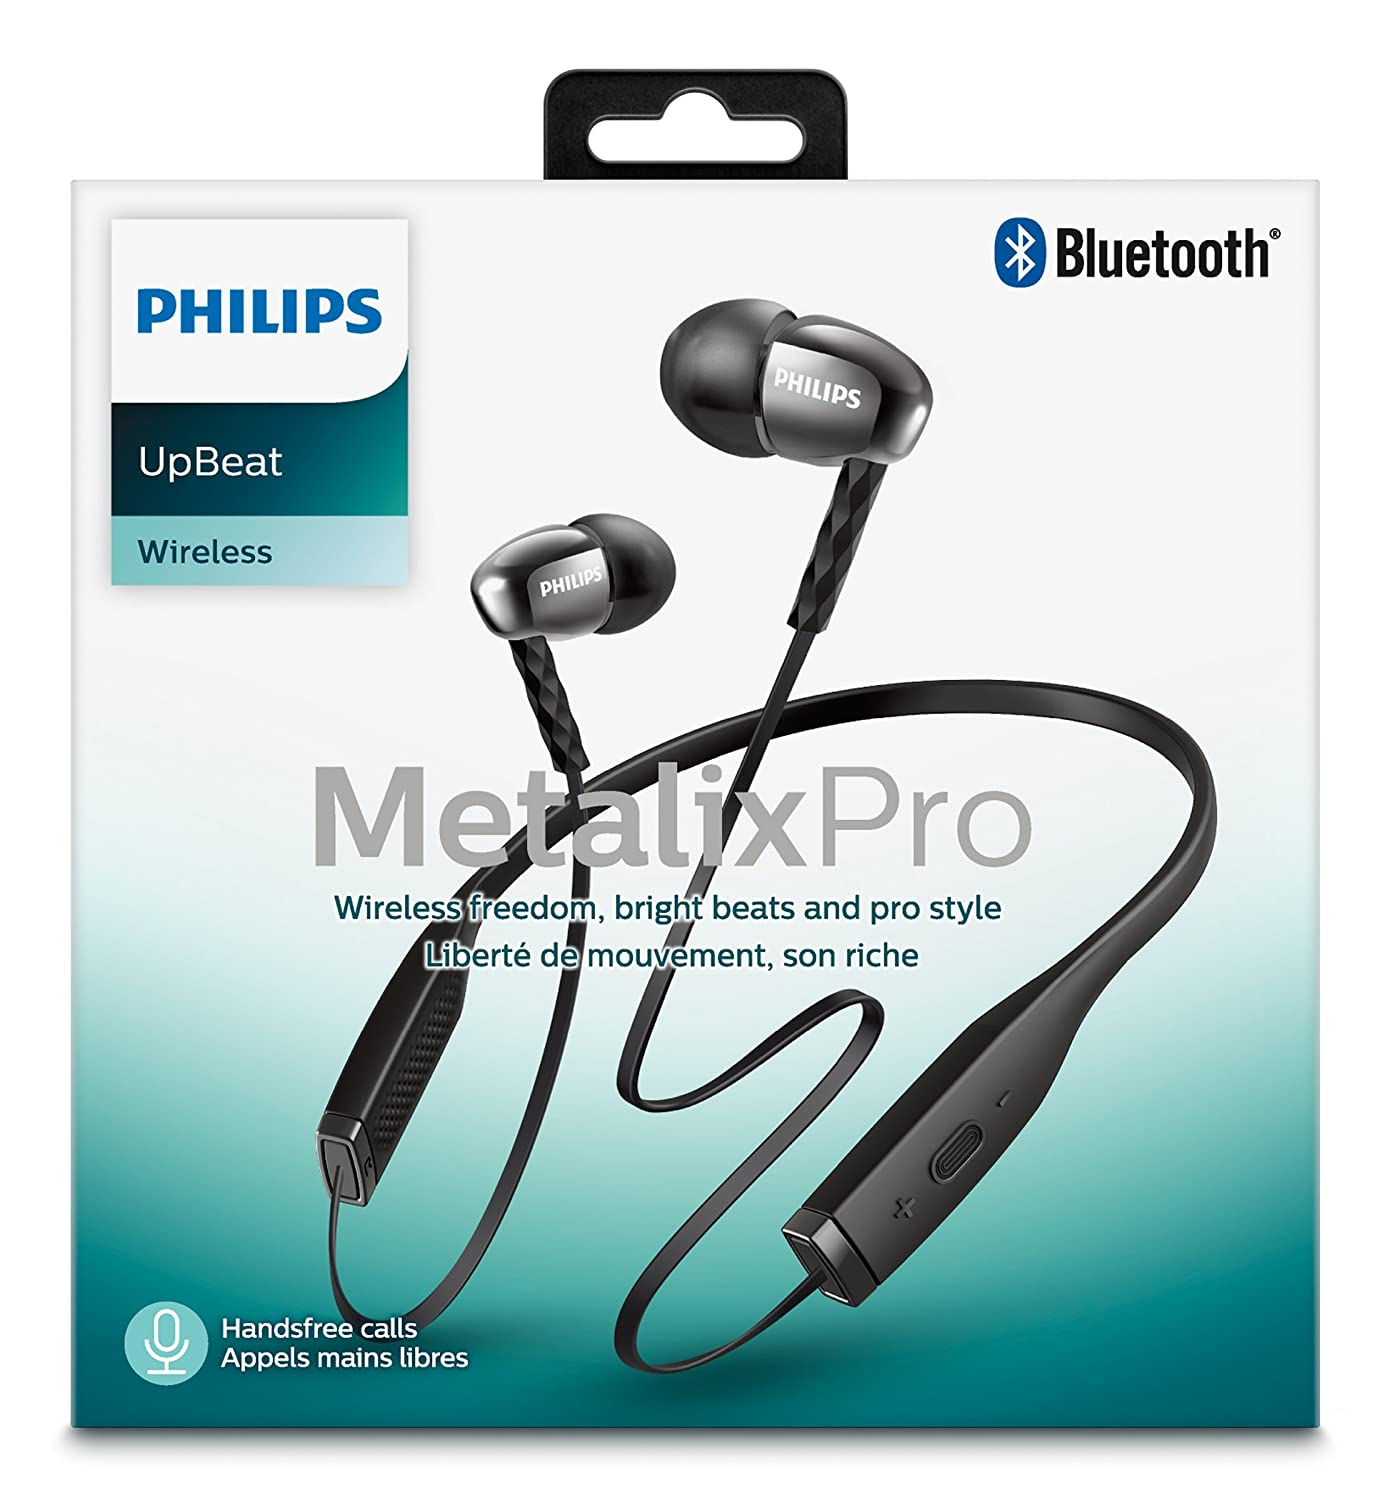 Philips SHB5950BK 00 Wireless Bluetooth Headset  Amazon.co.uk  Electronics 2ff280712b